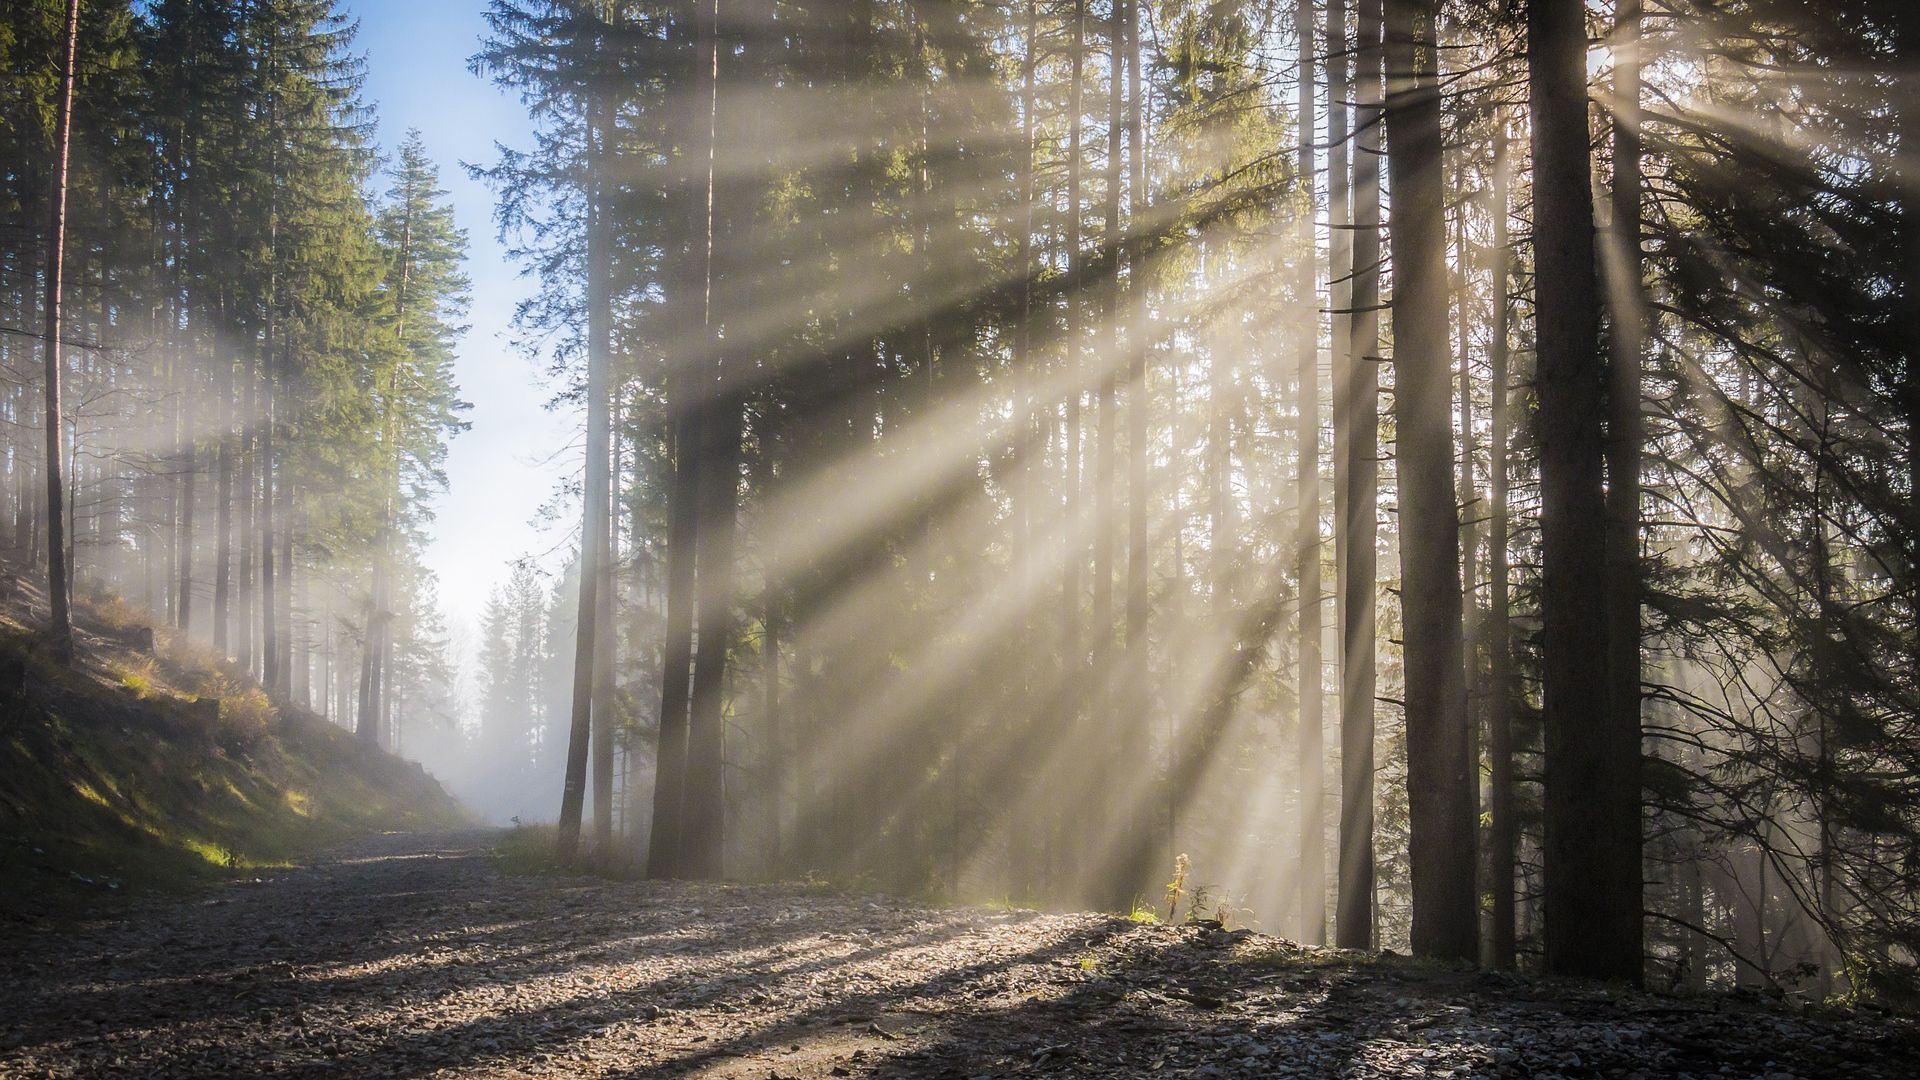 in,from,coming,nature,sunbeam,climax,creation,advent,trees,morning,sunray,tree diagram,sunup,forest,world,natural state,break of the day,sunrise